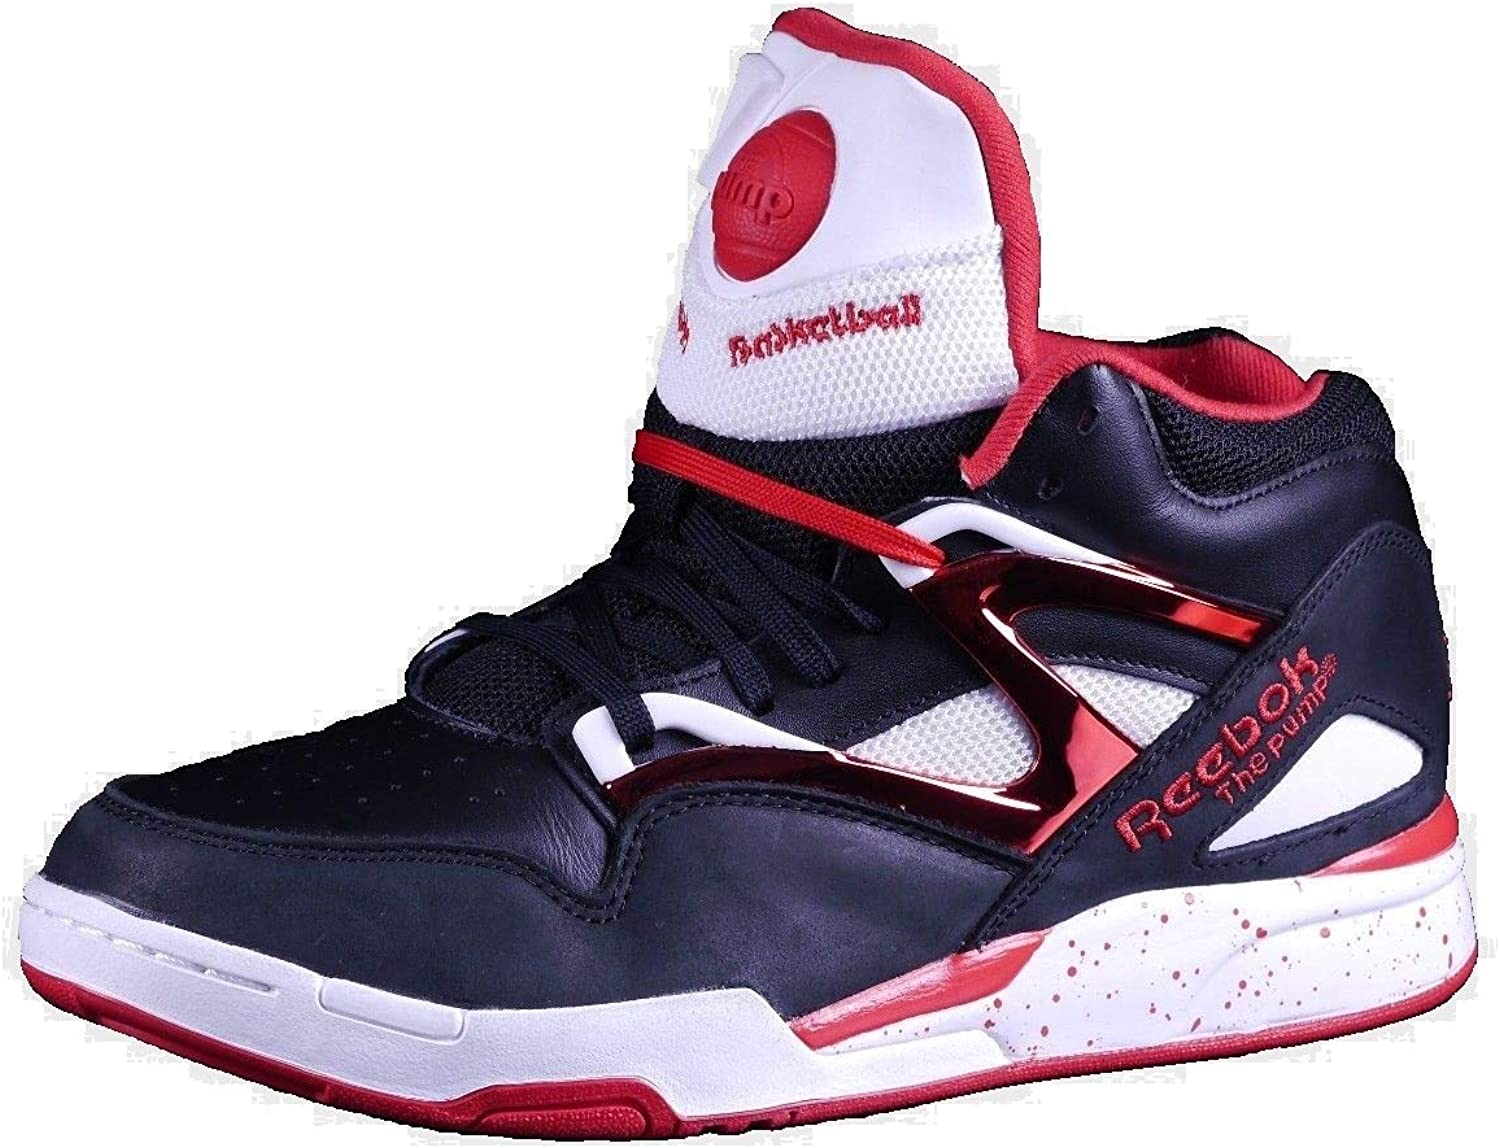 Reebok Classic Pump Omni Lite V56103 Basketball High Top